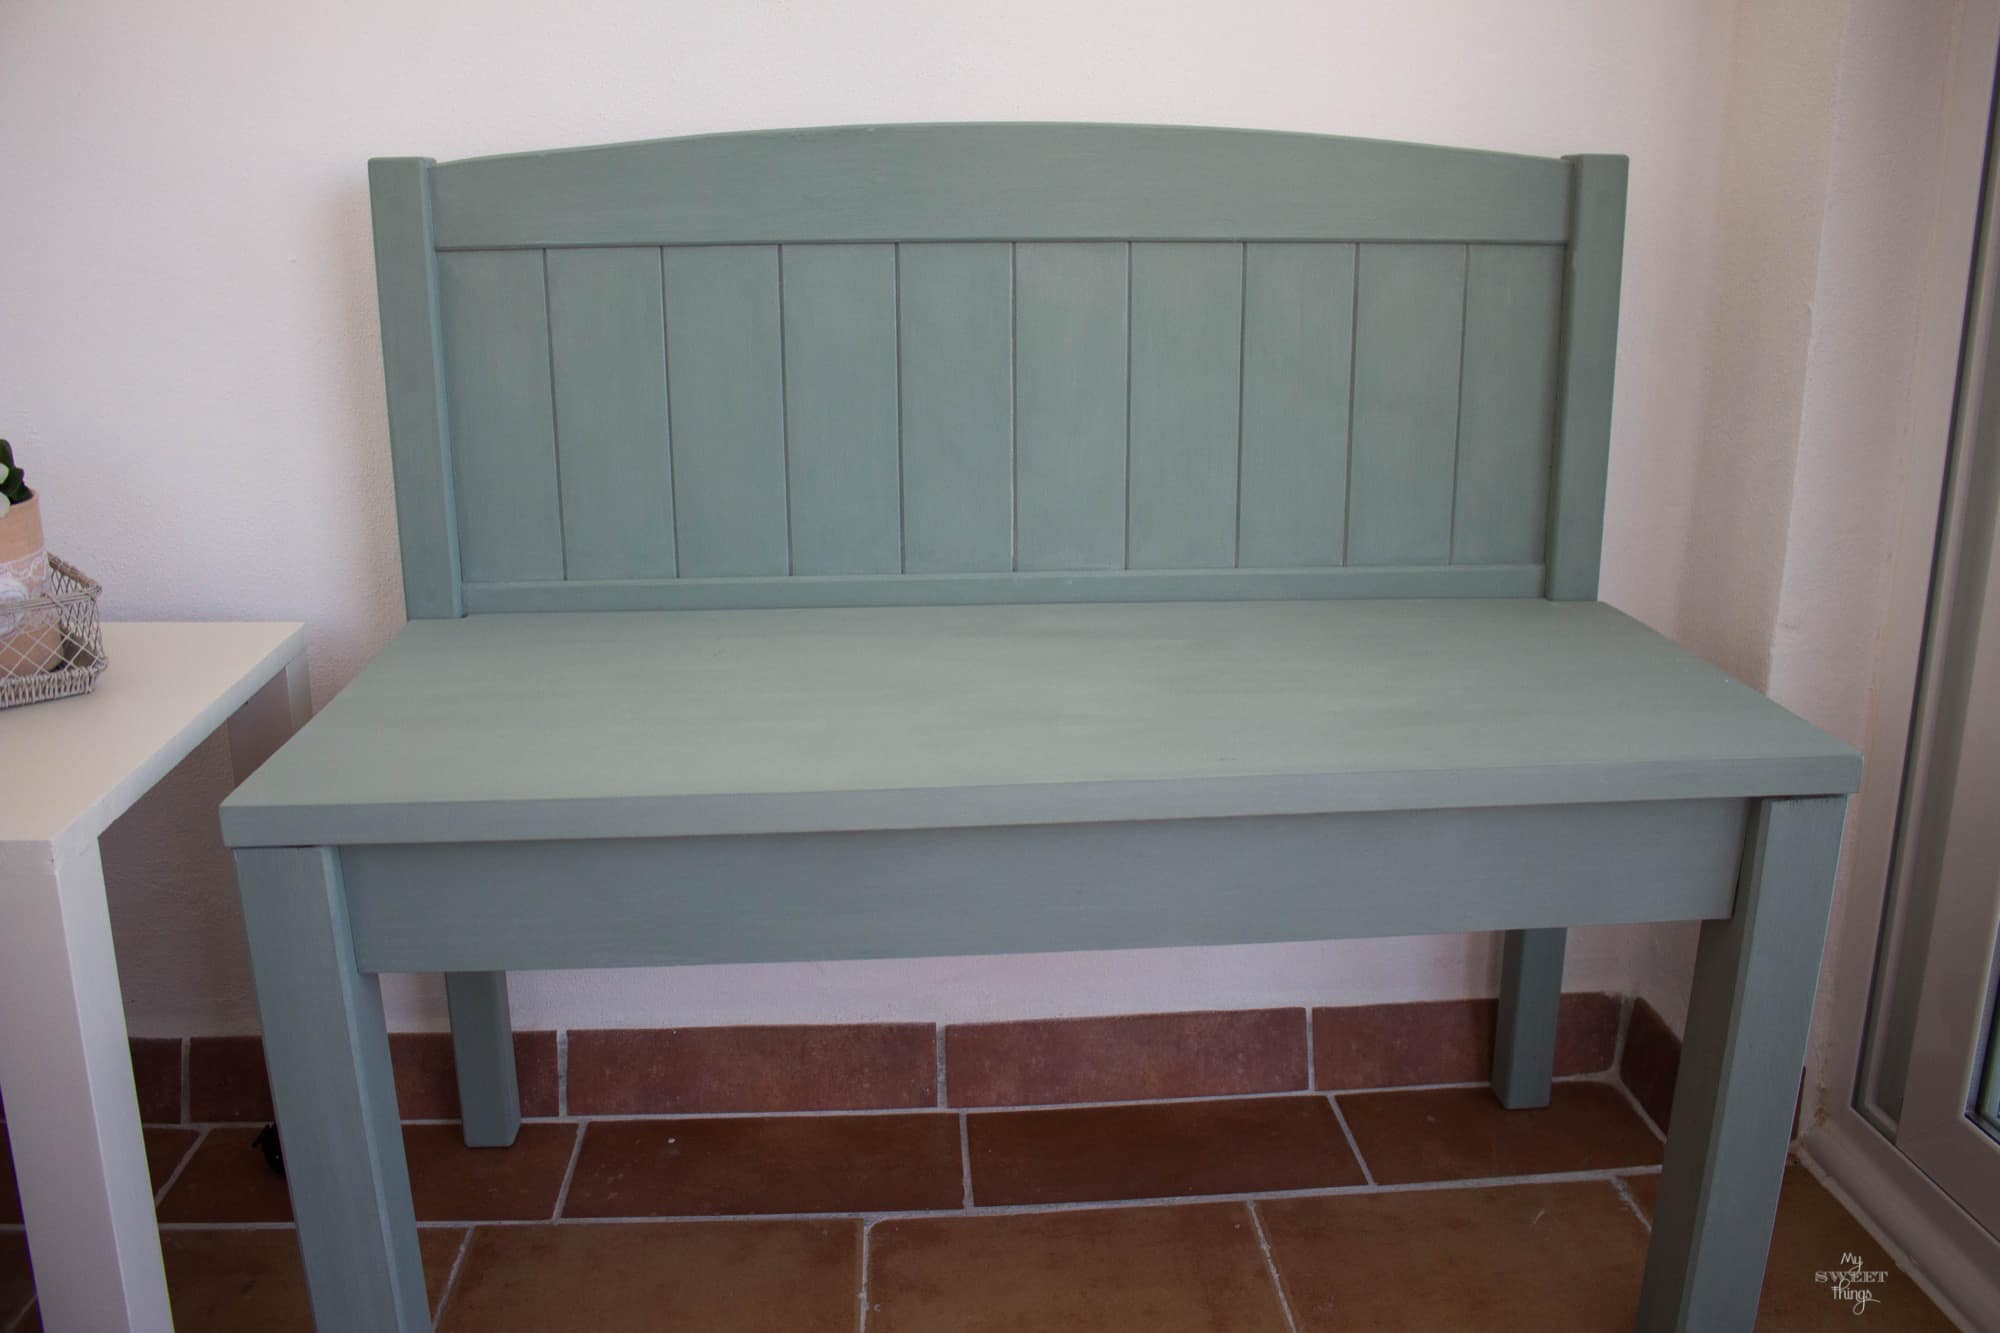 How to make twin benches out of two headboards painted with milk paint · Via www.sweethings.net